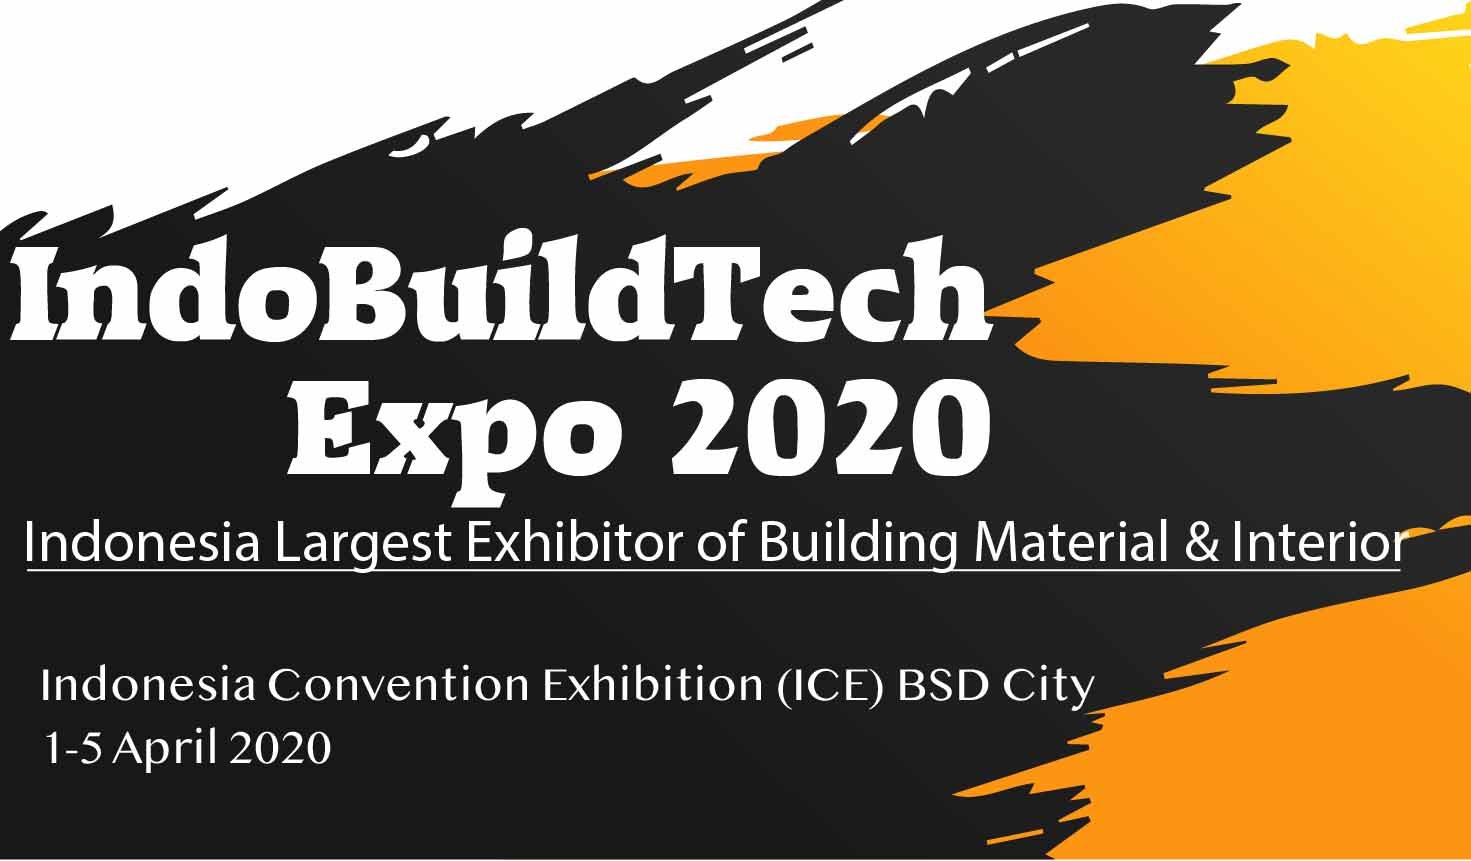 IndoBuildTech Expo 2020, 1-5 April 2020 di ICE BSD